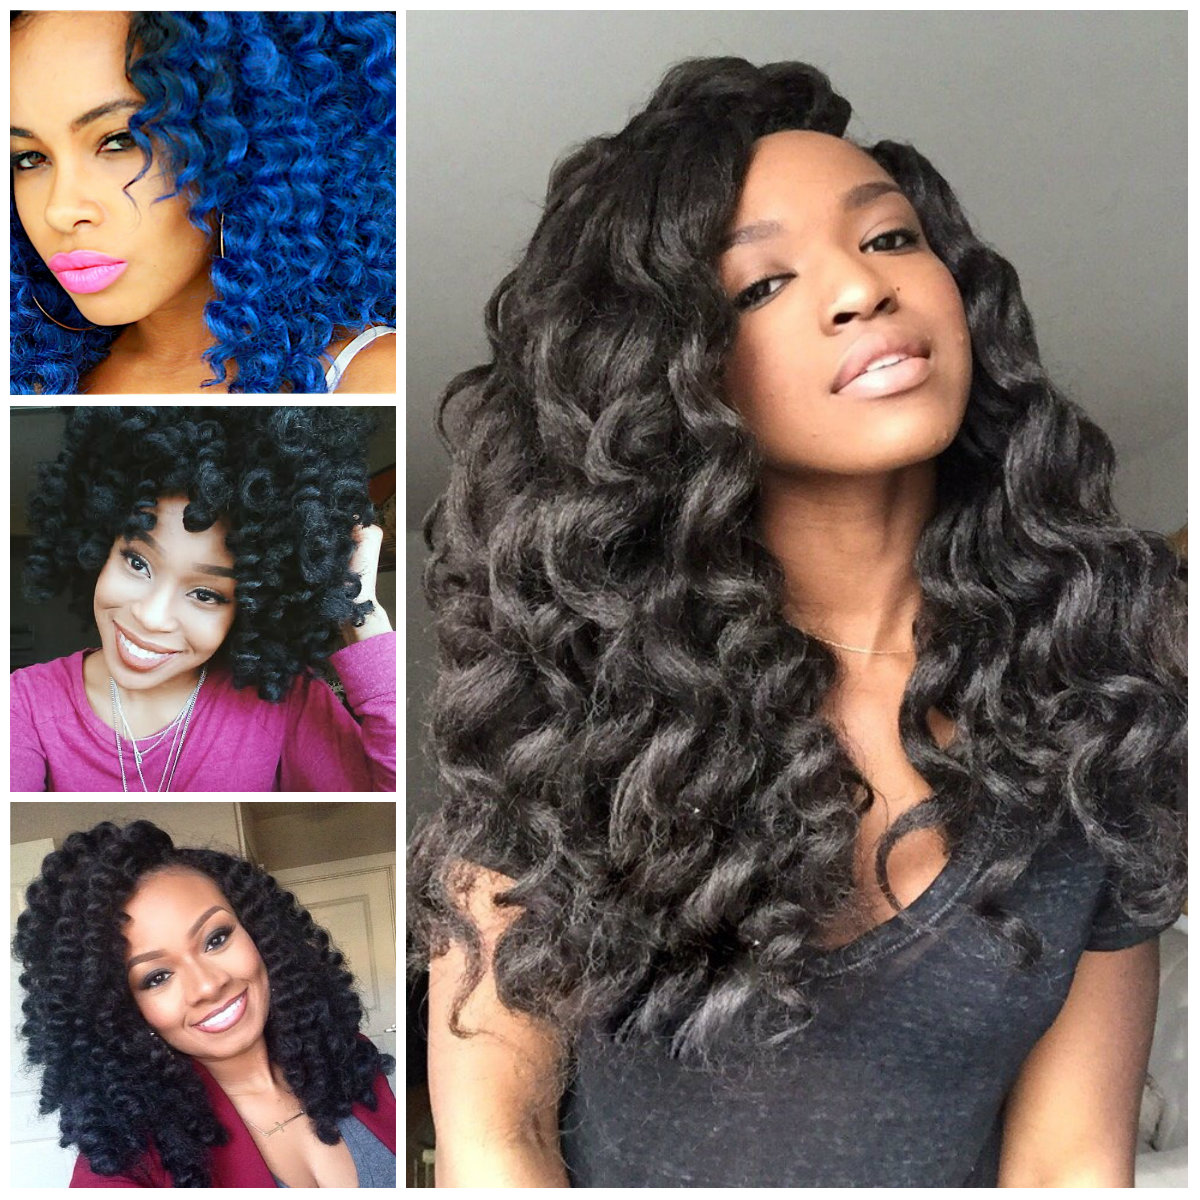 Crochet Braids Hairstyle Ideas for Black Women 2016